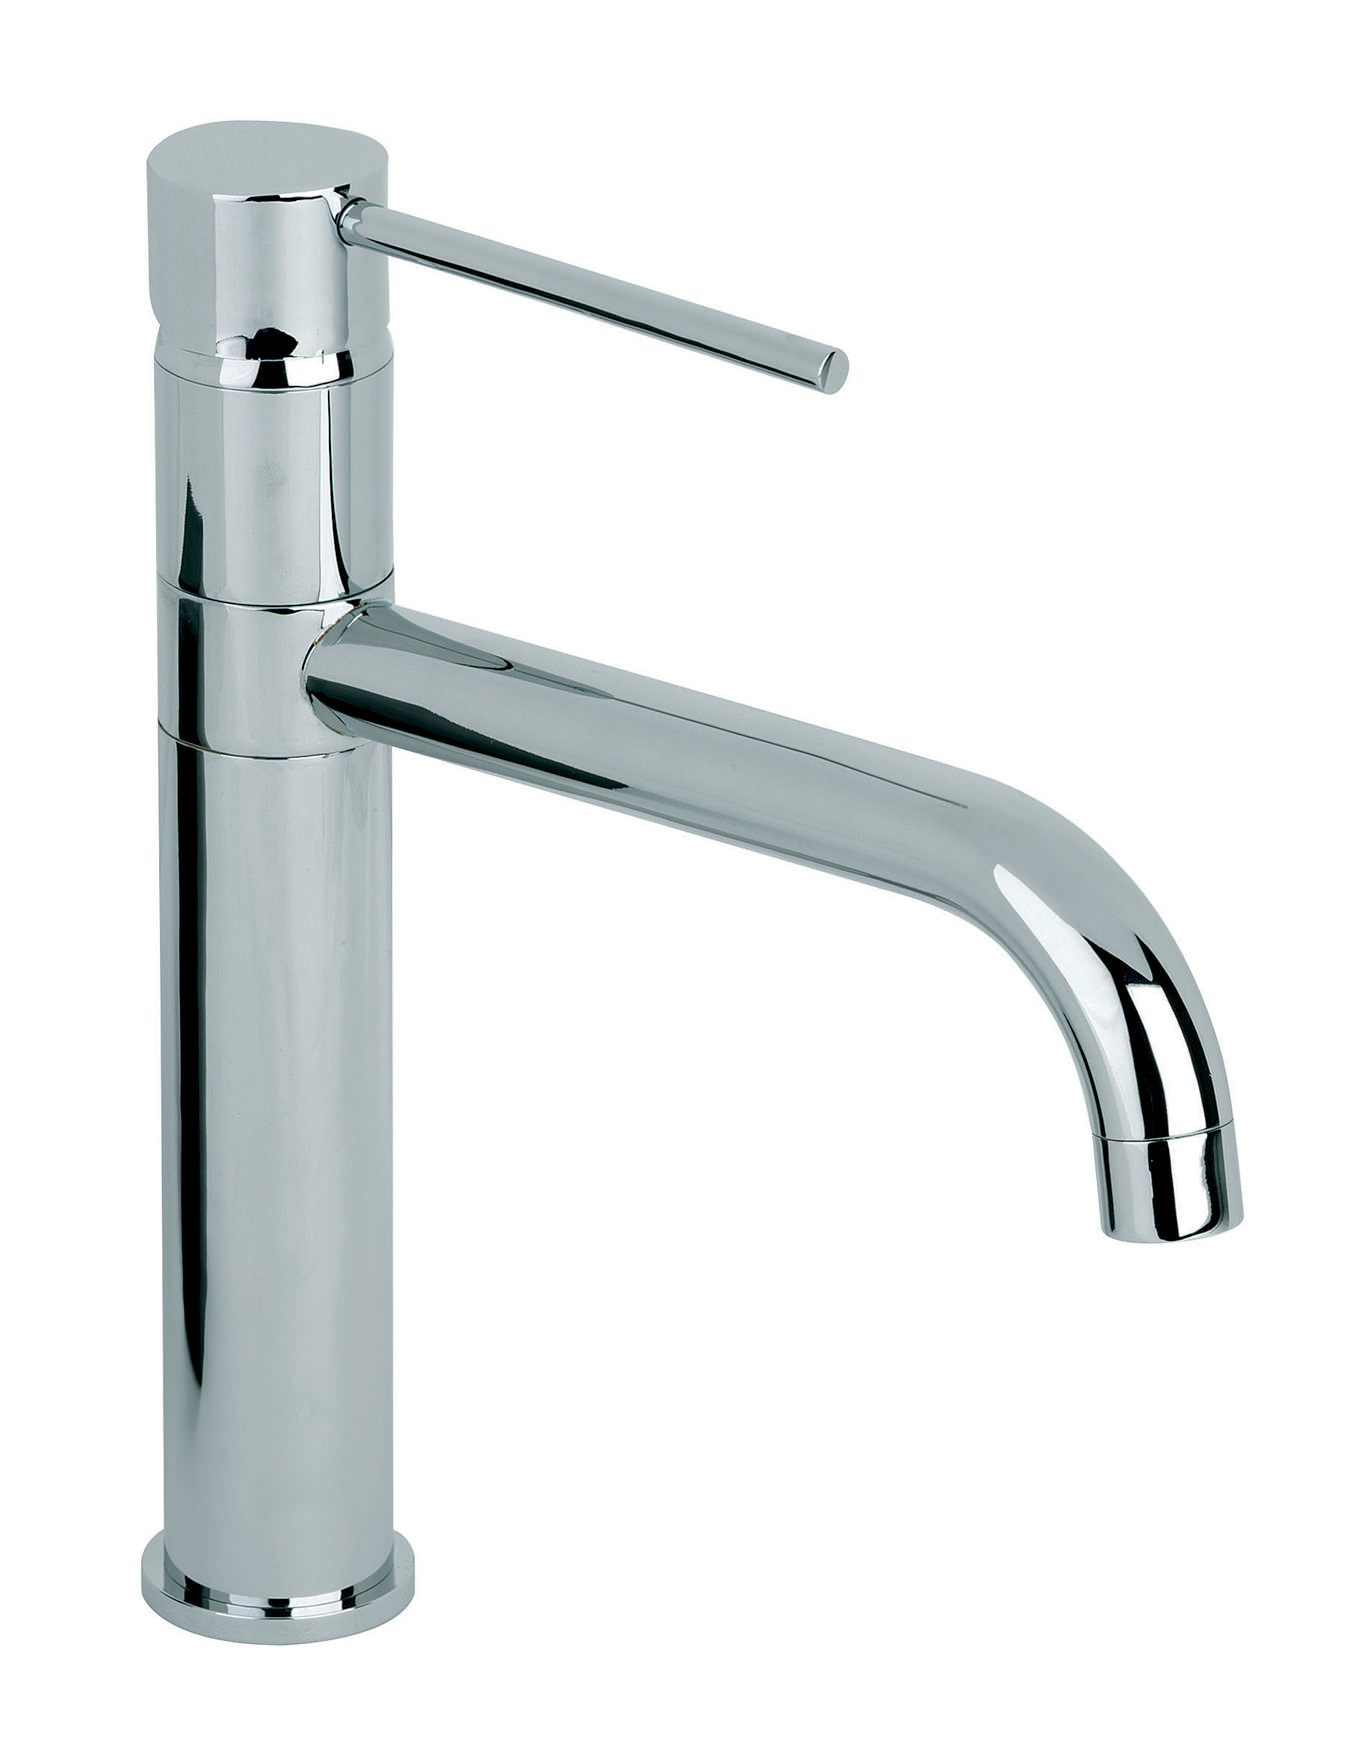 Mayfair ascot high rise kitchen mixer tap chrome with for Bathroom taps